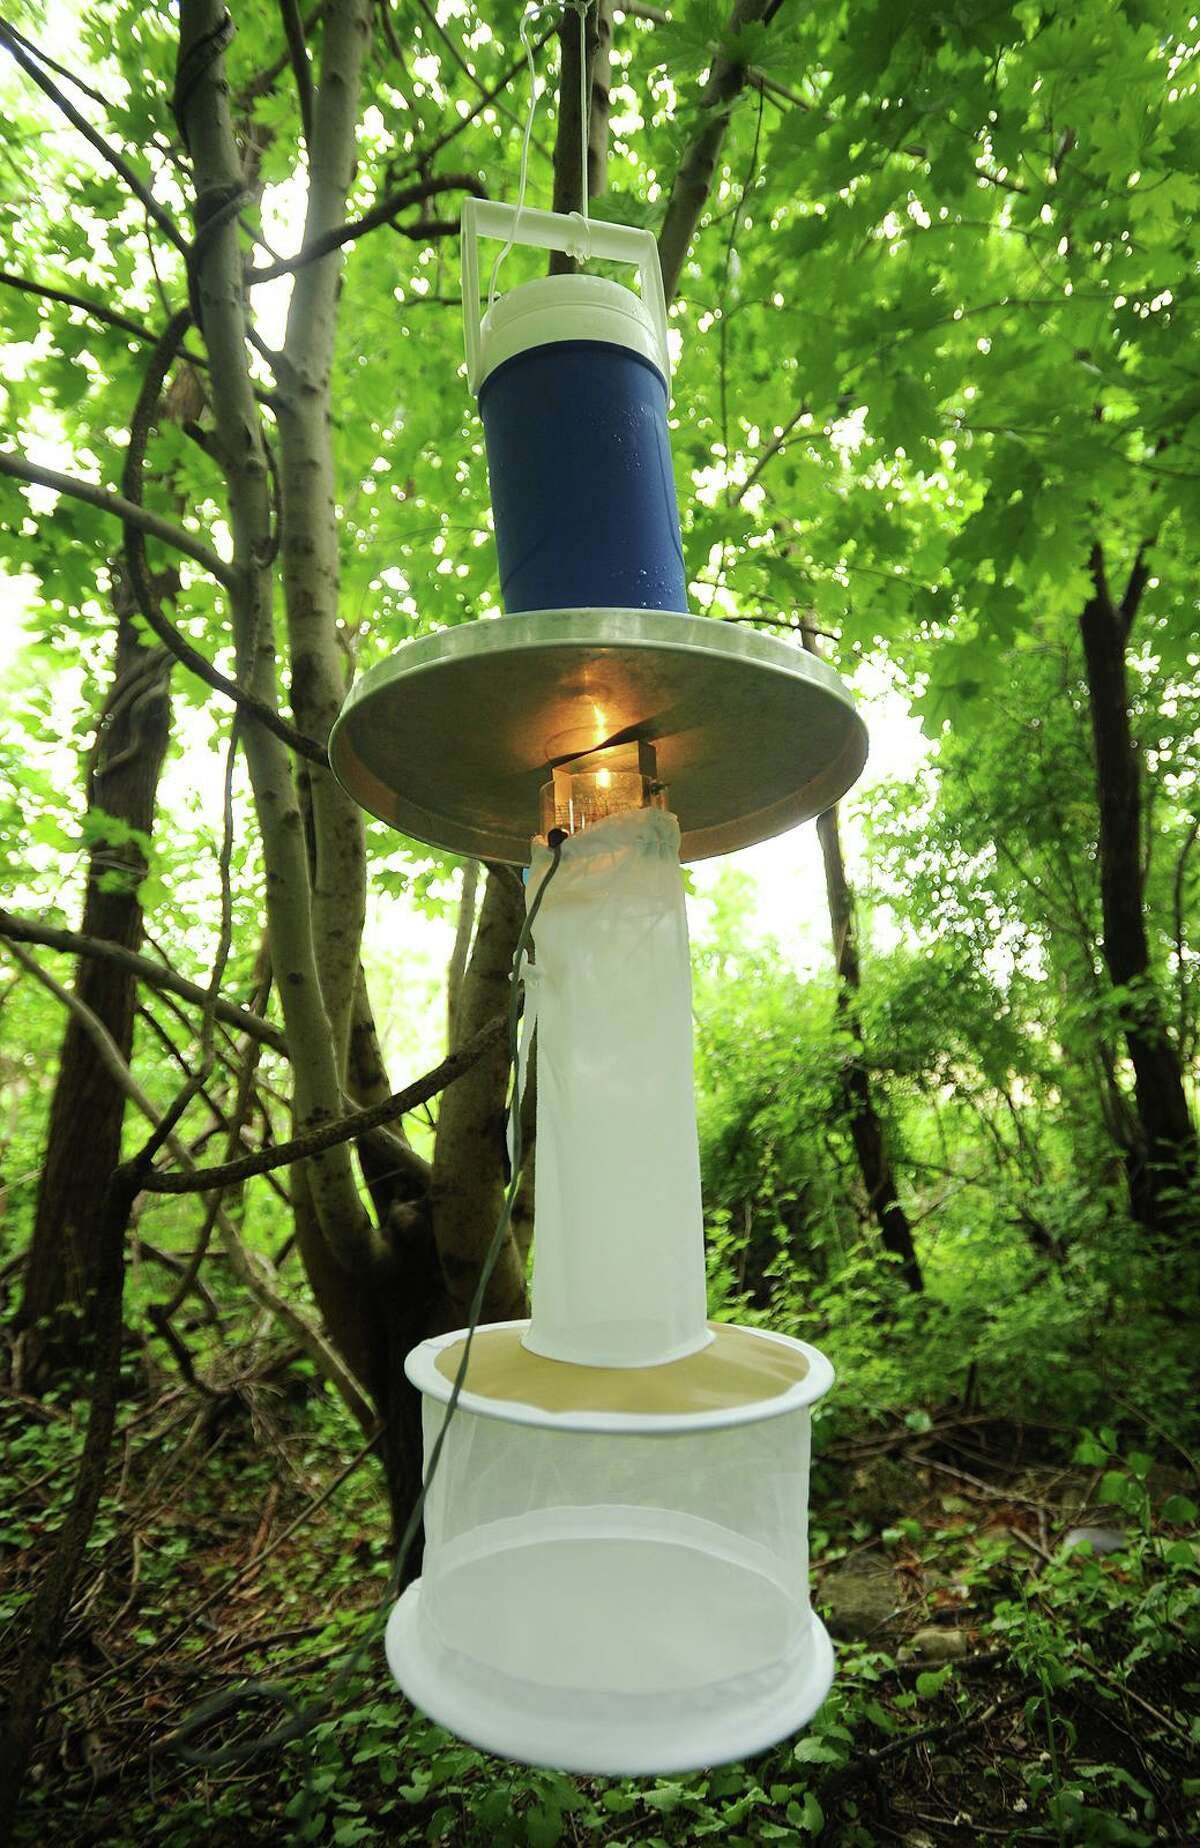 A mosquito sampling trap, known as a light trap, hangs from a tree near DeLuca Field on Main Street in Stratford, Conn. on Monday, June 1, 2015. The Connecticut Agricultural Experiment Station collects mosquitoes every year from a wide range of locations to track West Nile Virus.